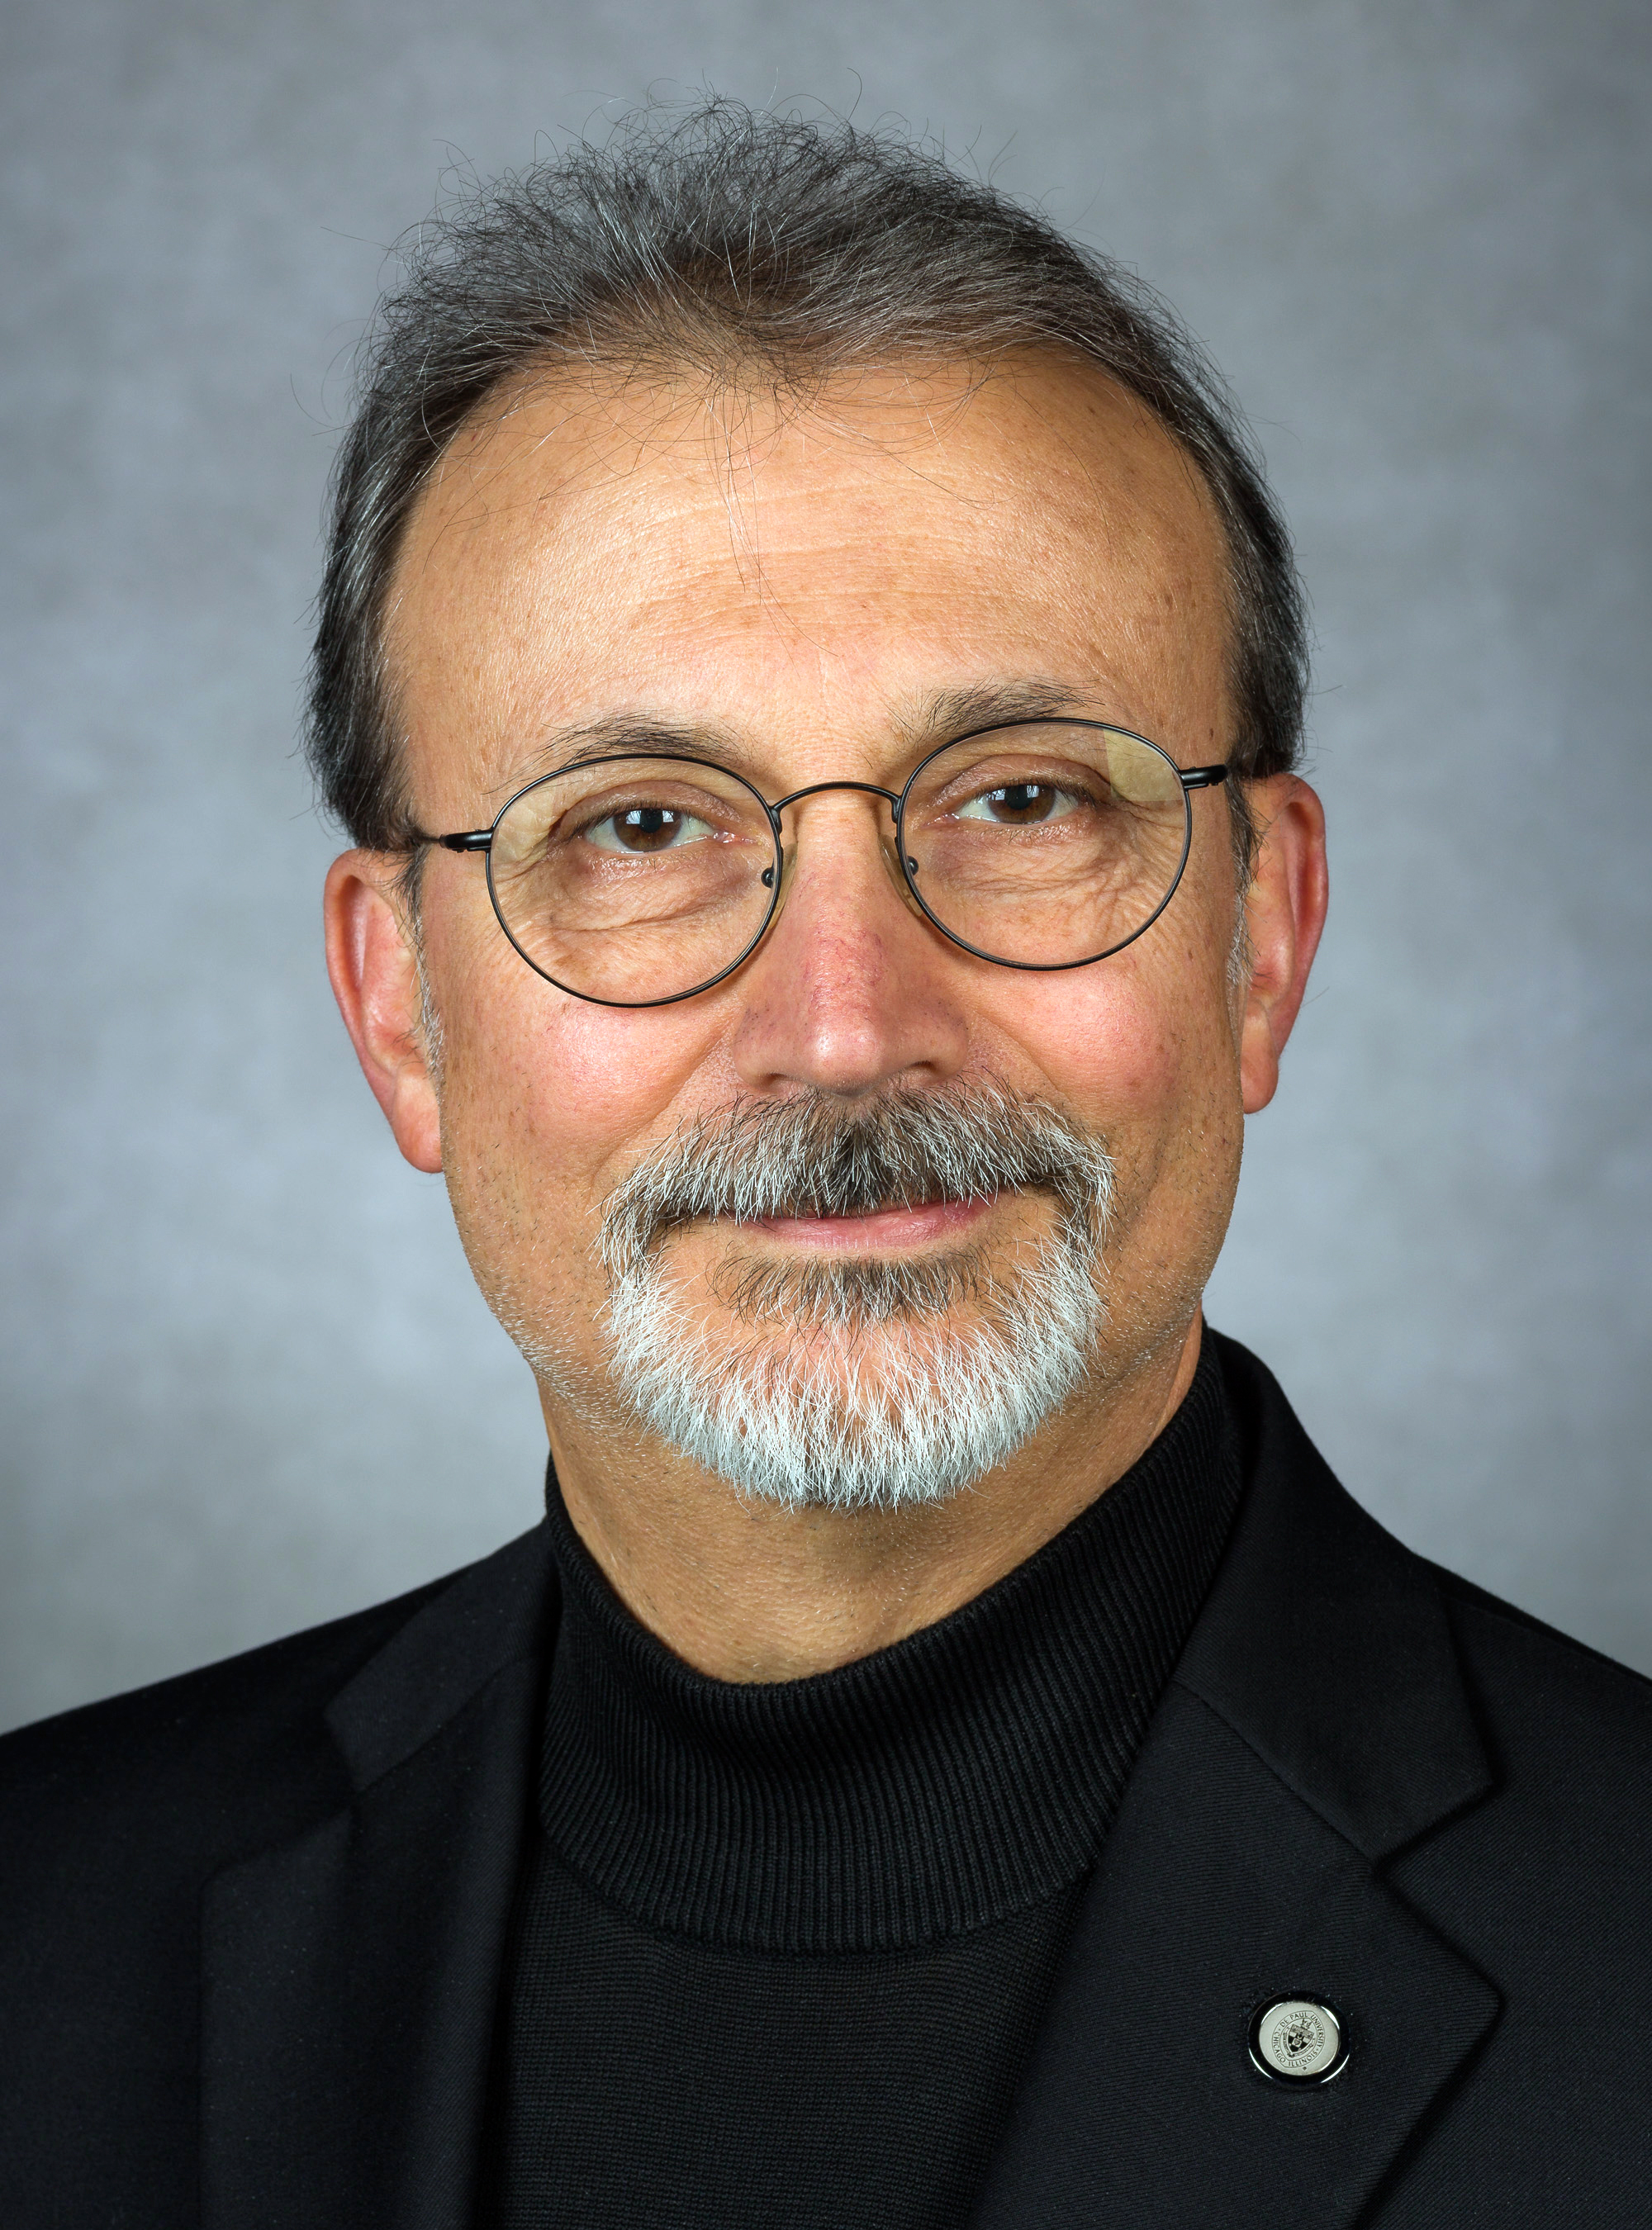 Guillermo Vasquez de Velasco, Dean, College of LAS